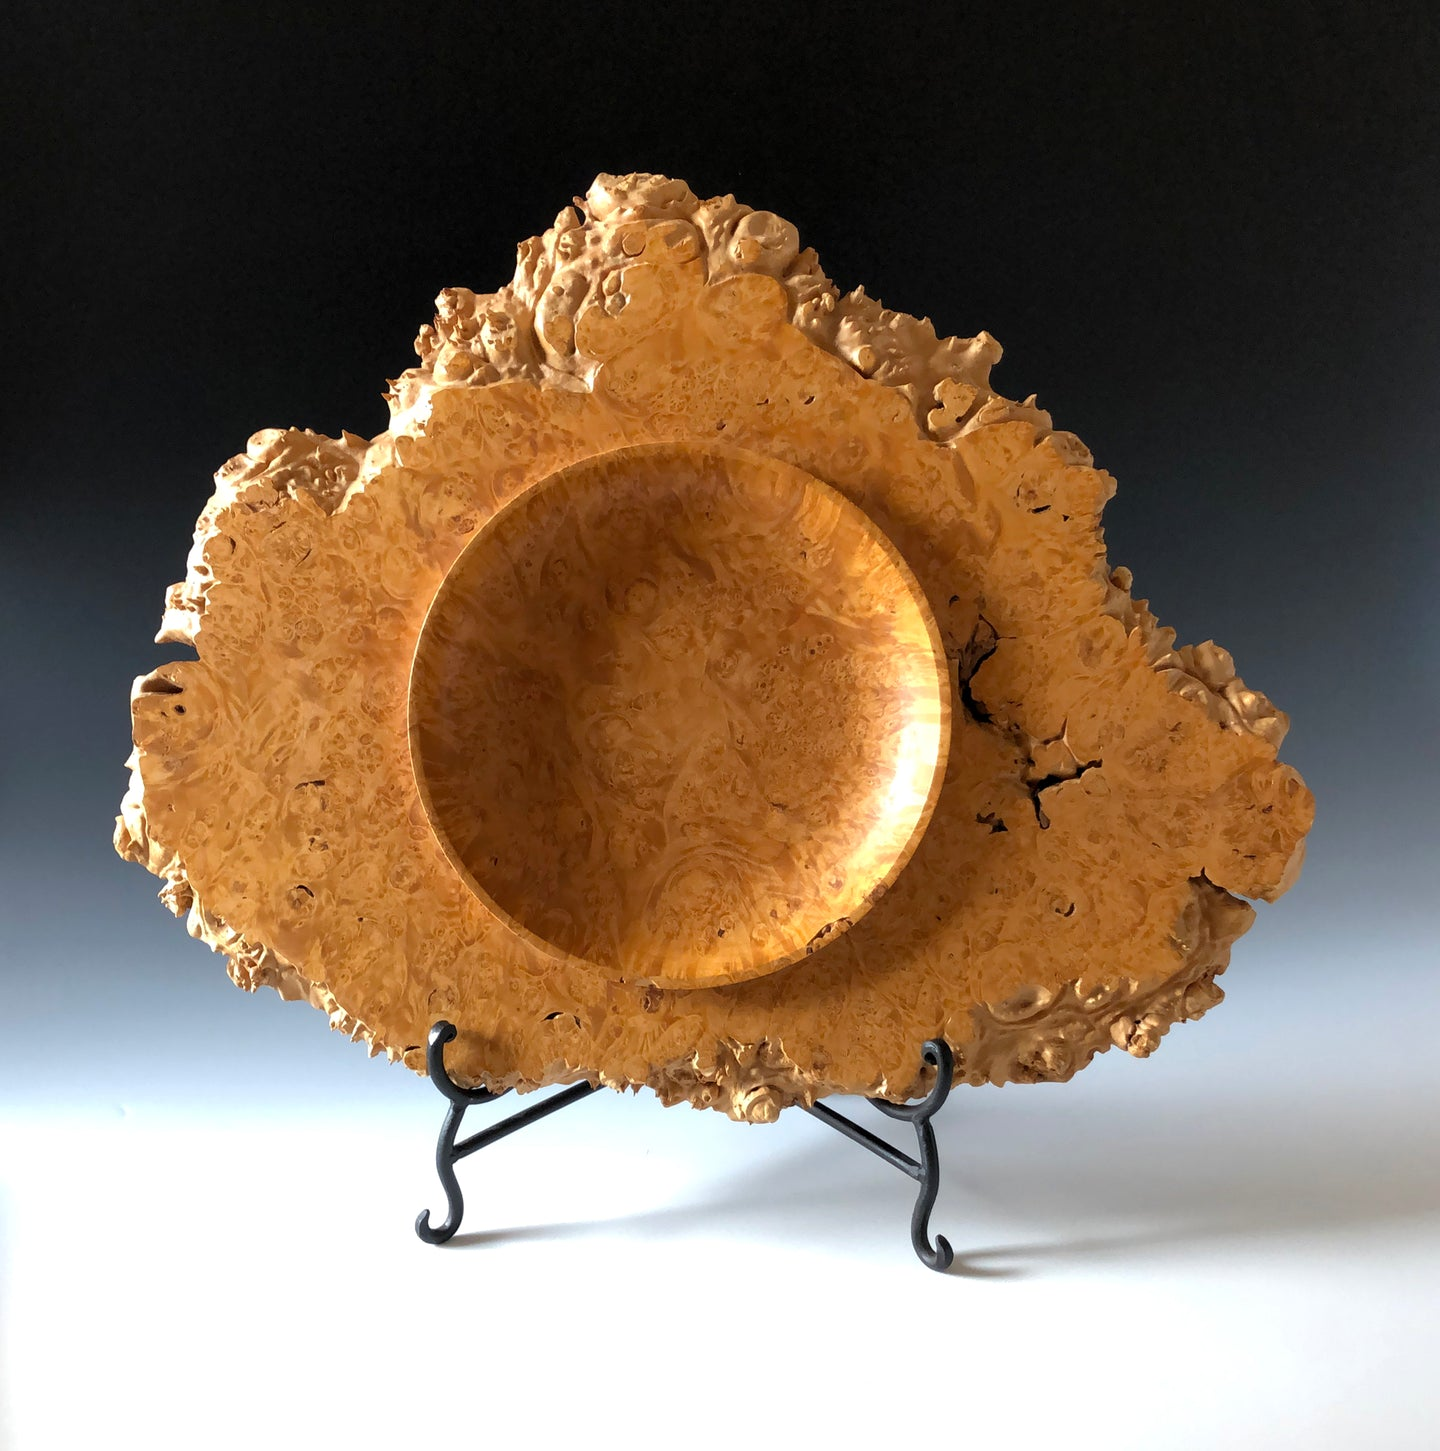 MAPLE BURL PRESENTATION PLATTER